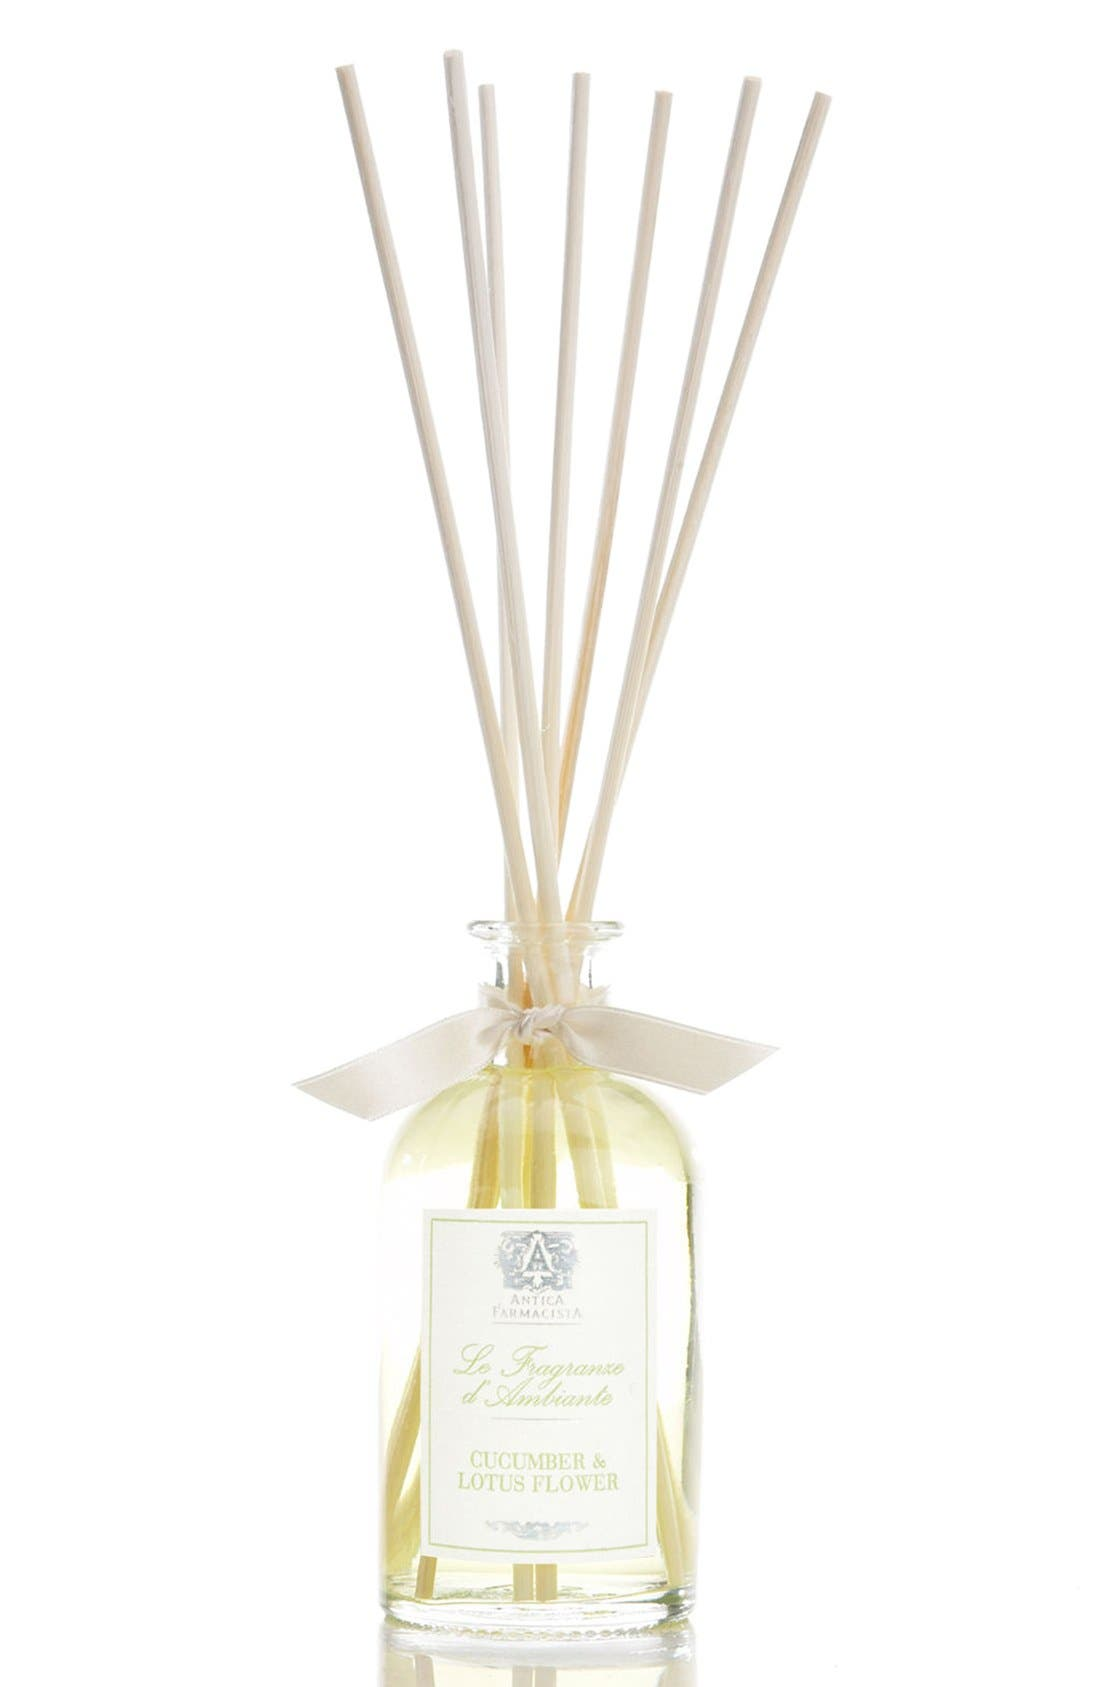 Antica Farmacista Cucumber & Lotus Flower Home Ambiance Perfume (3.3 oz.)